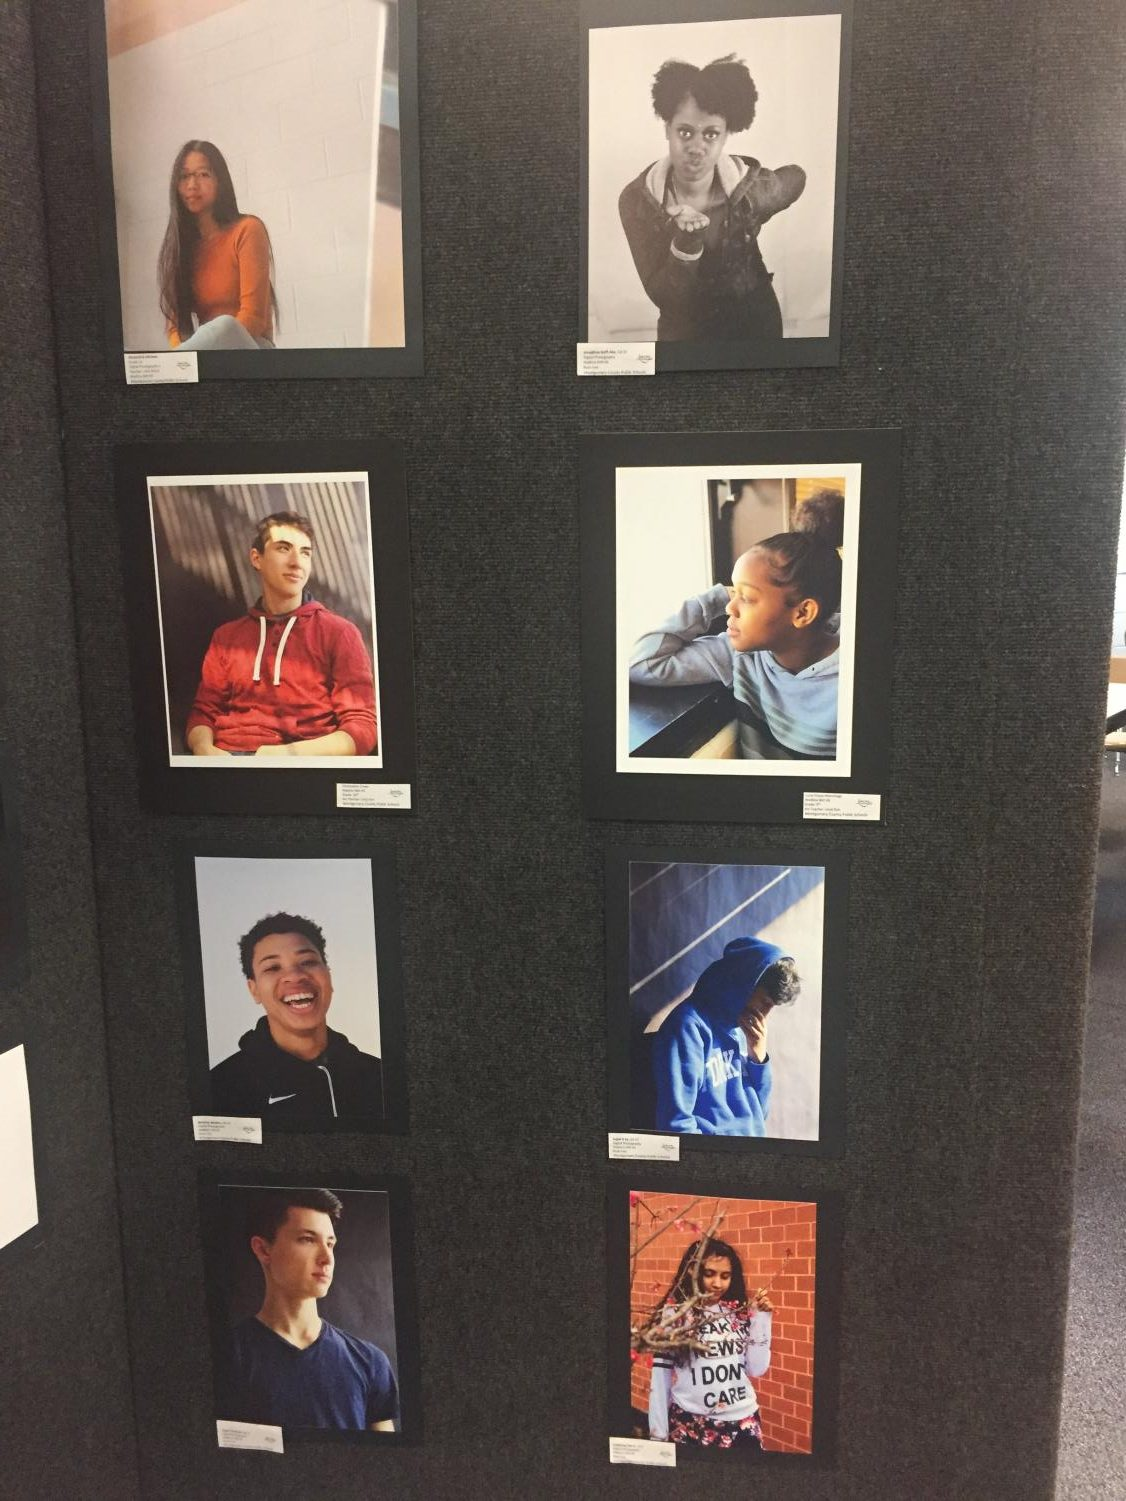 Photo+Portraits+by+Watkins+Mill+students+of+Watkins+Mill+students+in+the+Watkins+Mill+High+School+Art+Show+2019